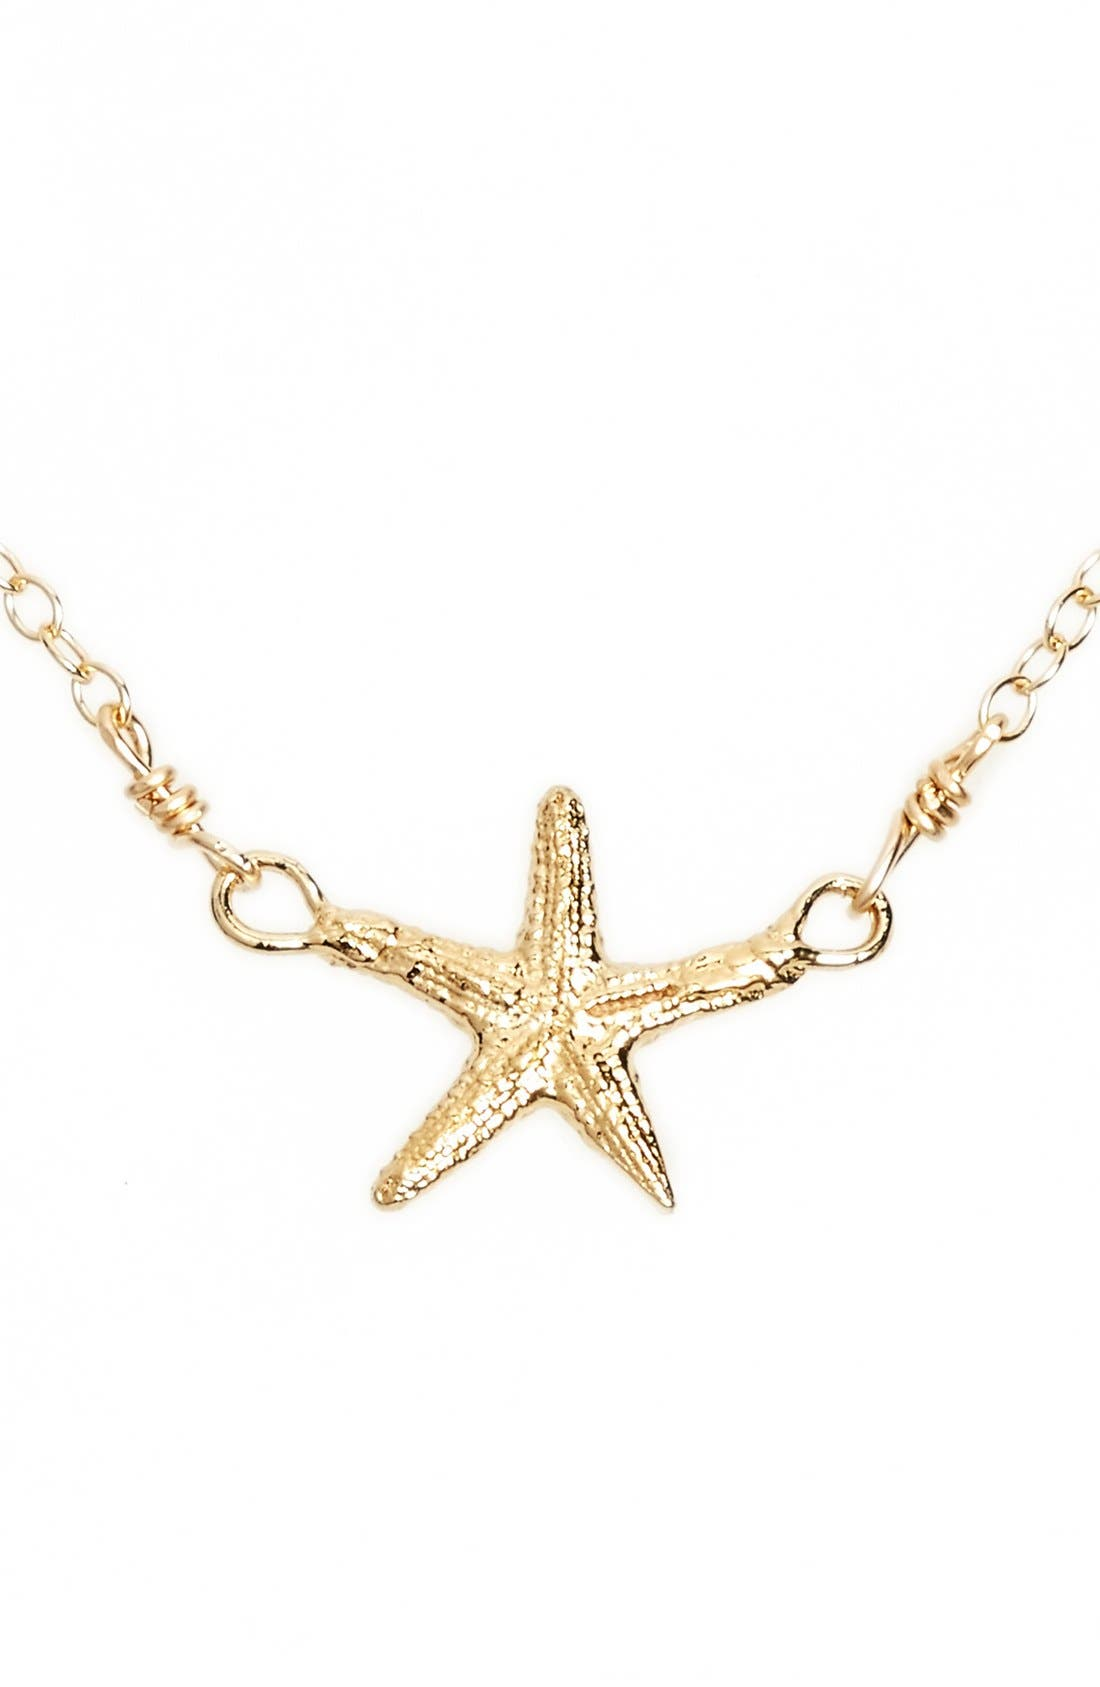 Alternate Image 1 Selected - ki-ele 'Manini' Starfish Pendant Necklace